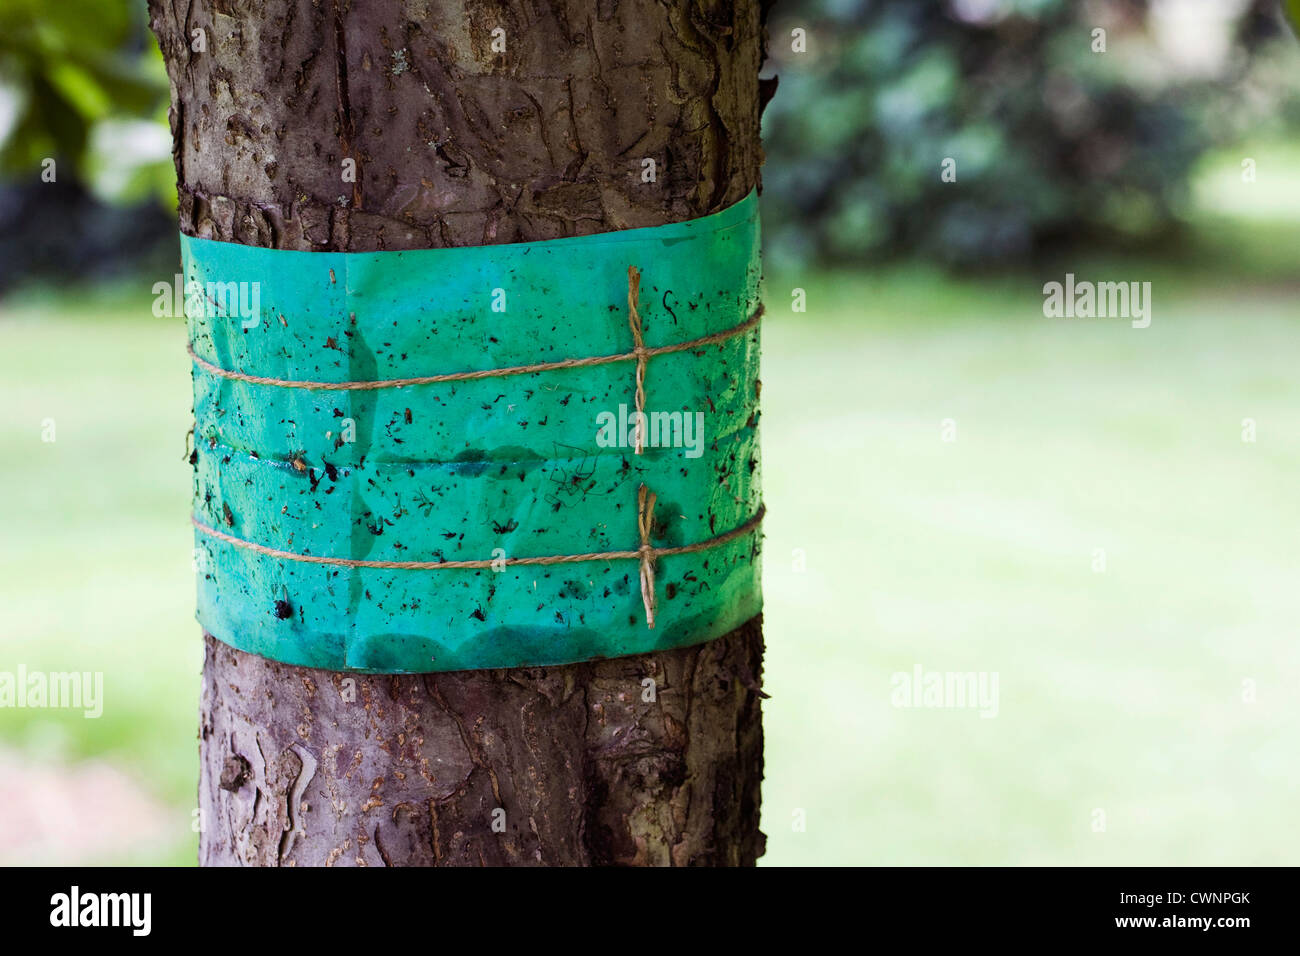 Grease band around an apple tree trunk, used to prevent wingless moths climbing the trunk of the tree. Stock Photo